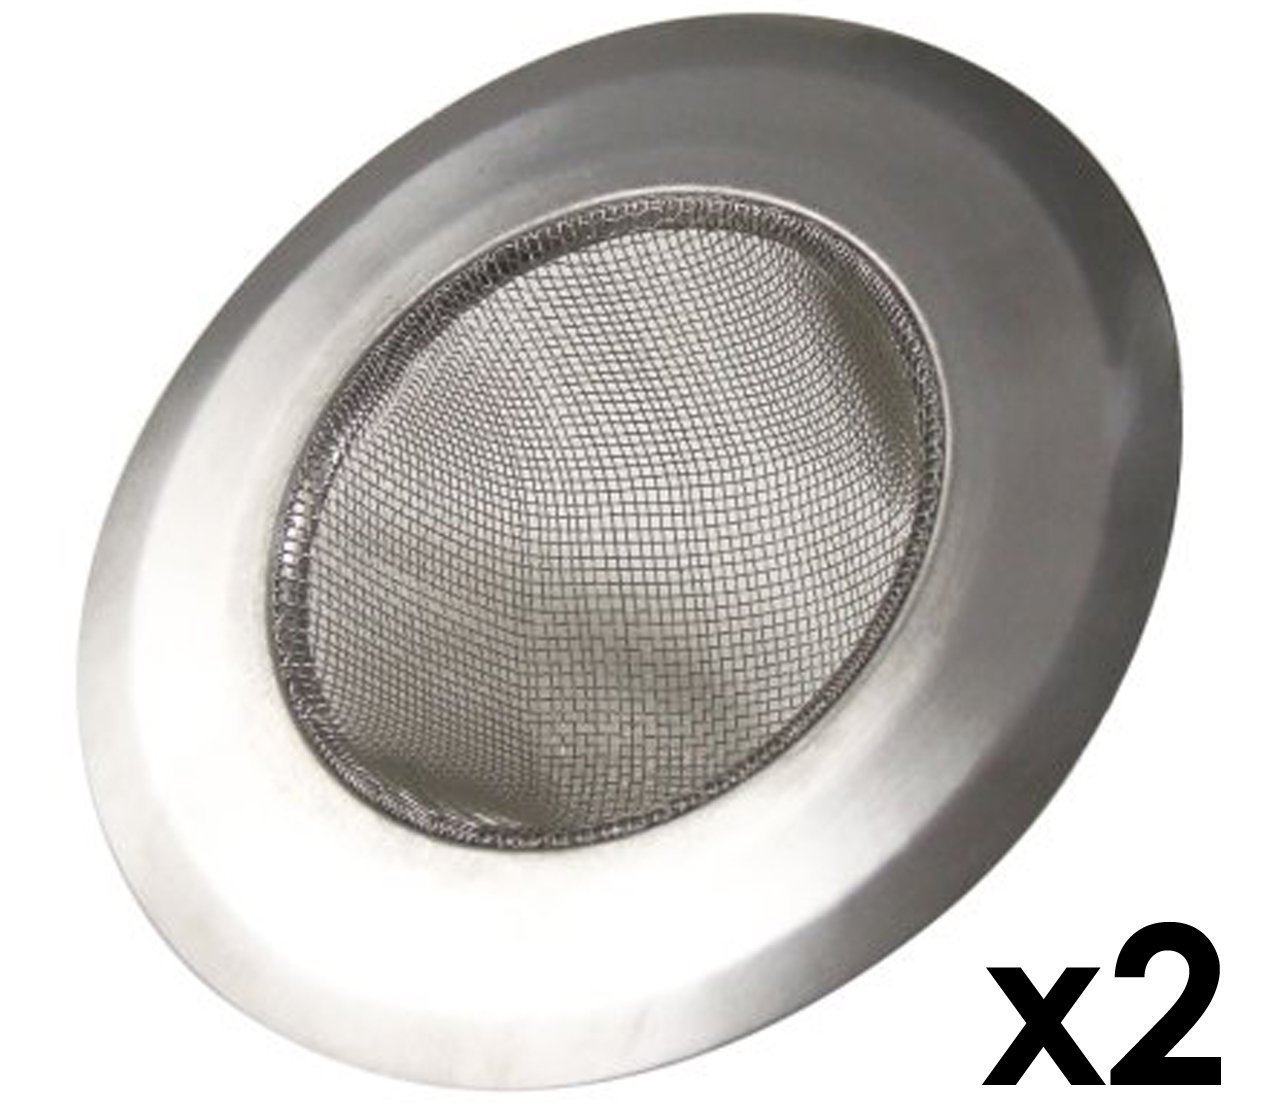 Hs5049 Ss2 Stainless Steel Kitchen Sink Strainer Set Of 2 Large Wide Rim 4 25 Diameter Perfect For Kitchen Sinks Set Of 2 Large Kitchen Sink